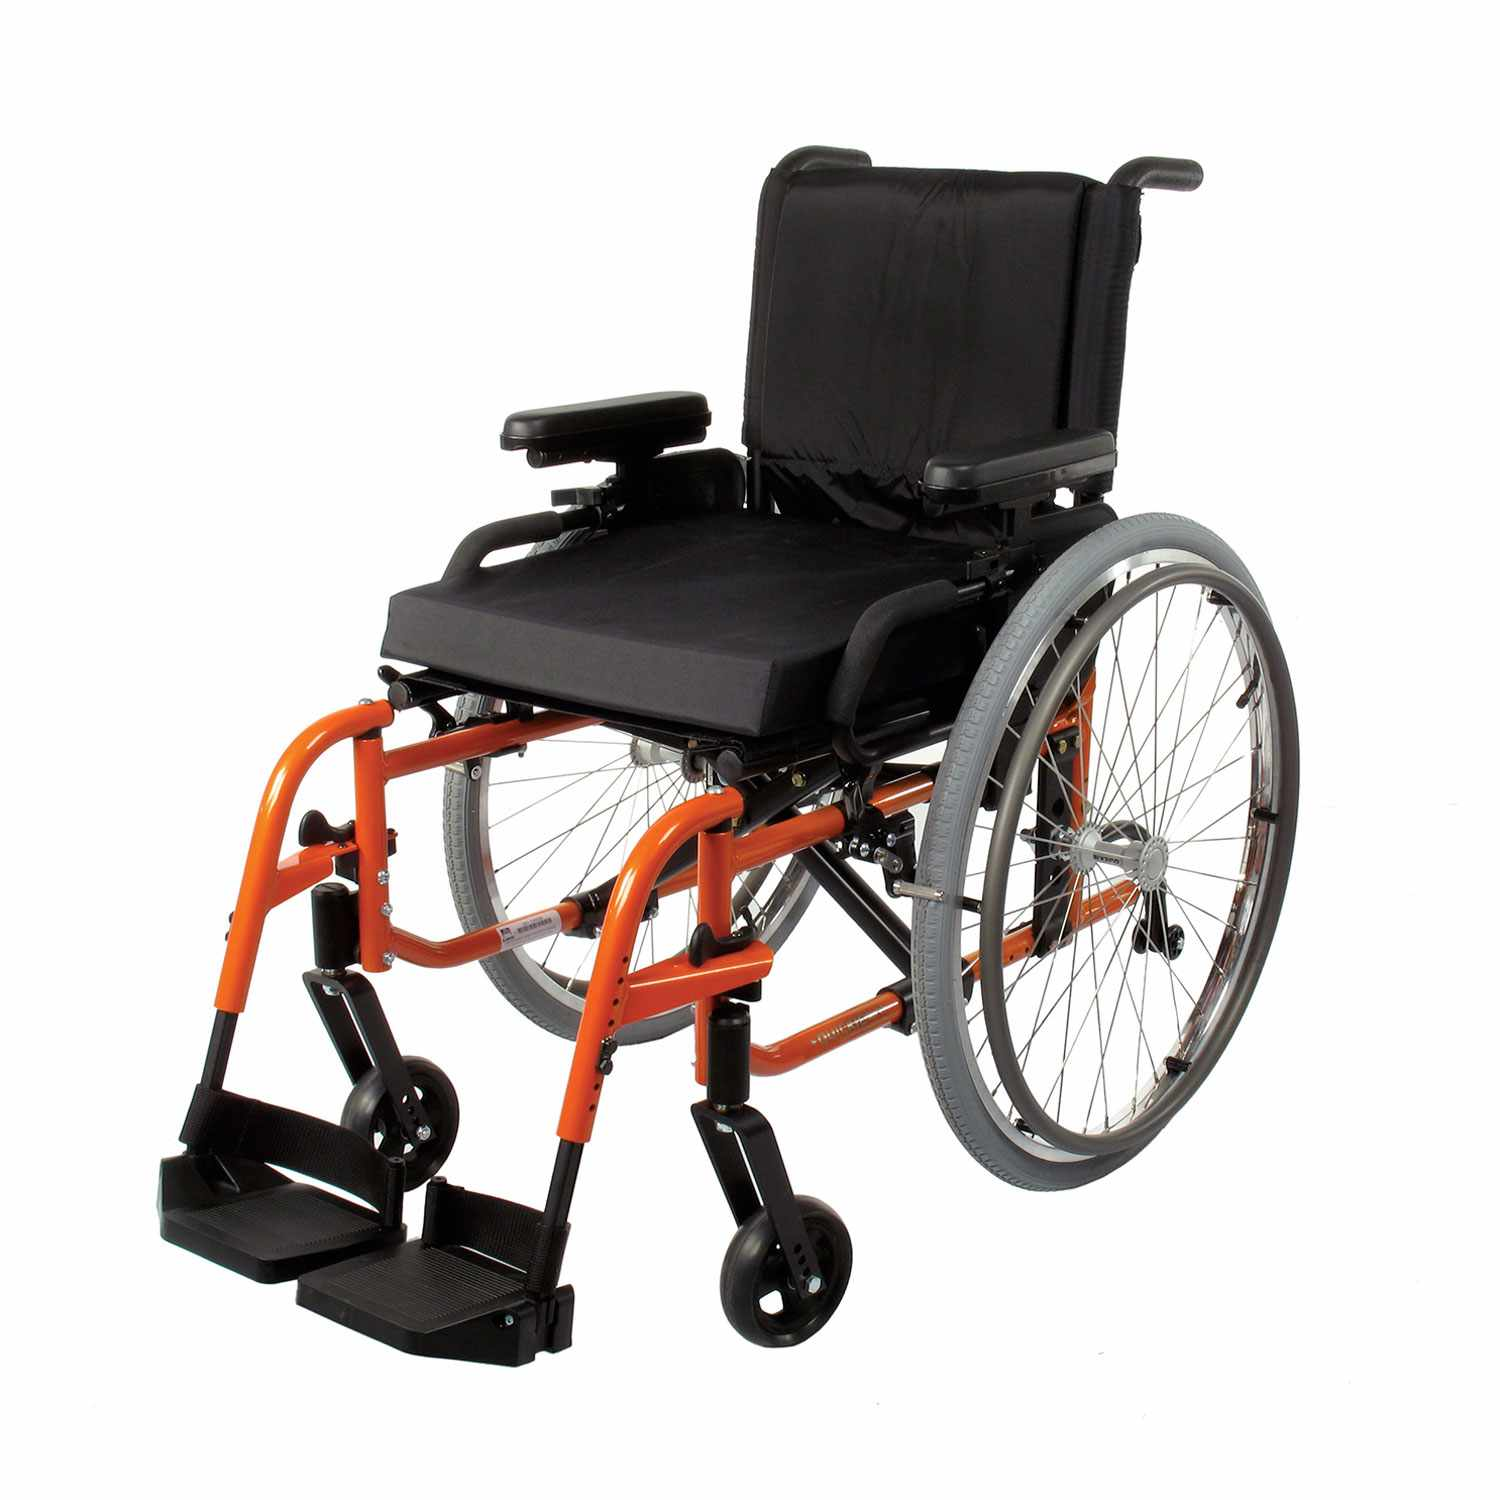 Quickie LXI folding ultralight wheelchair